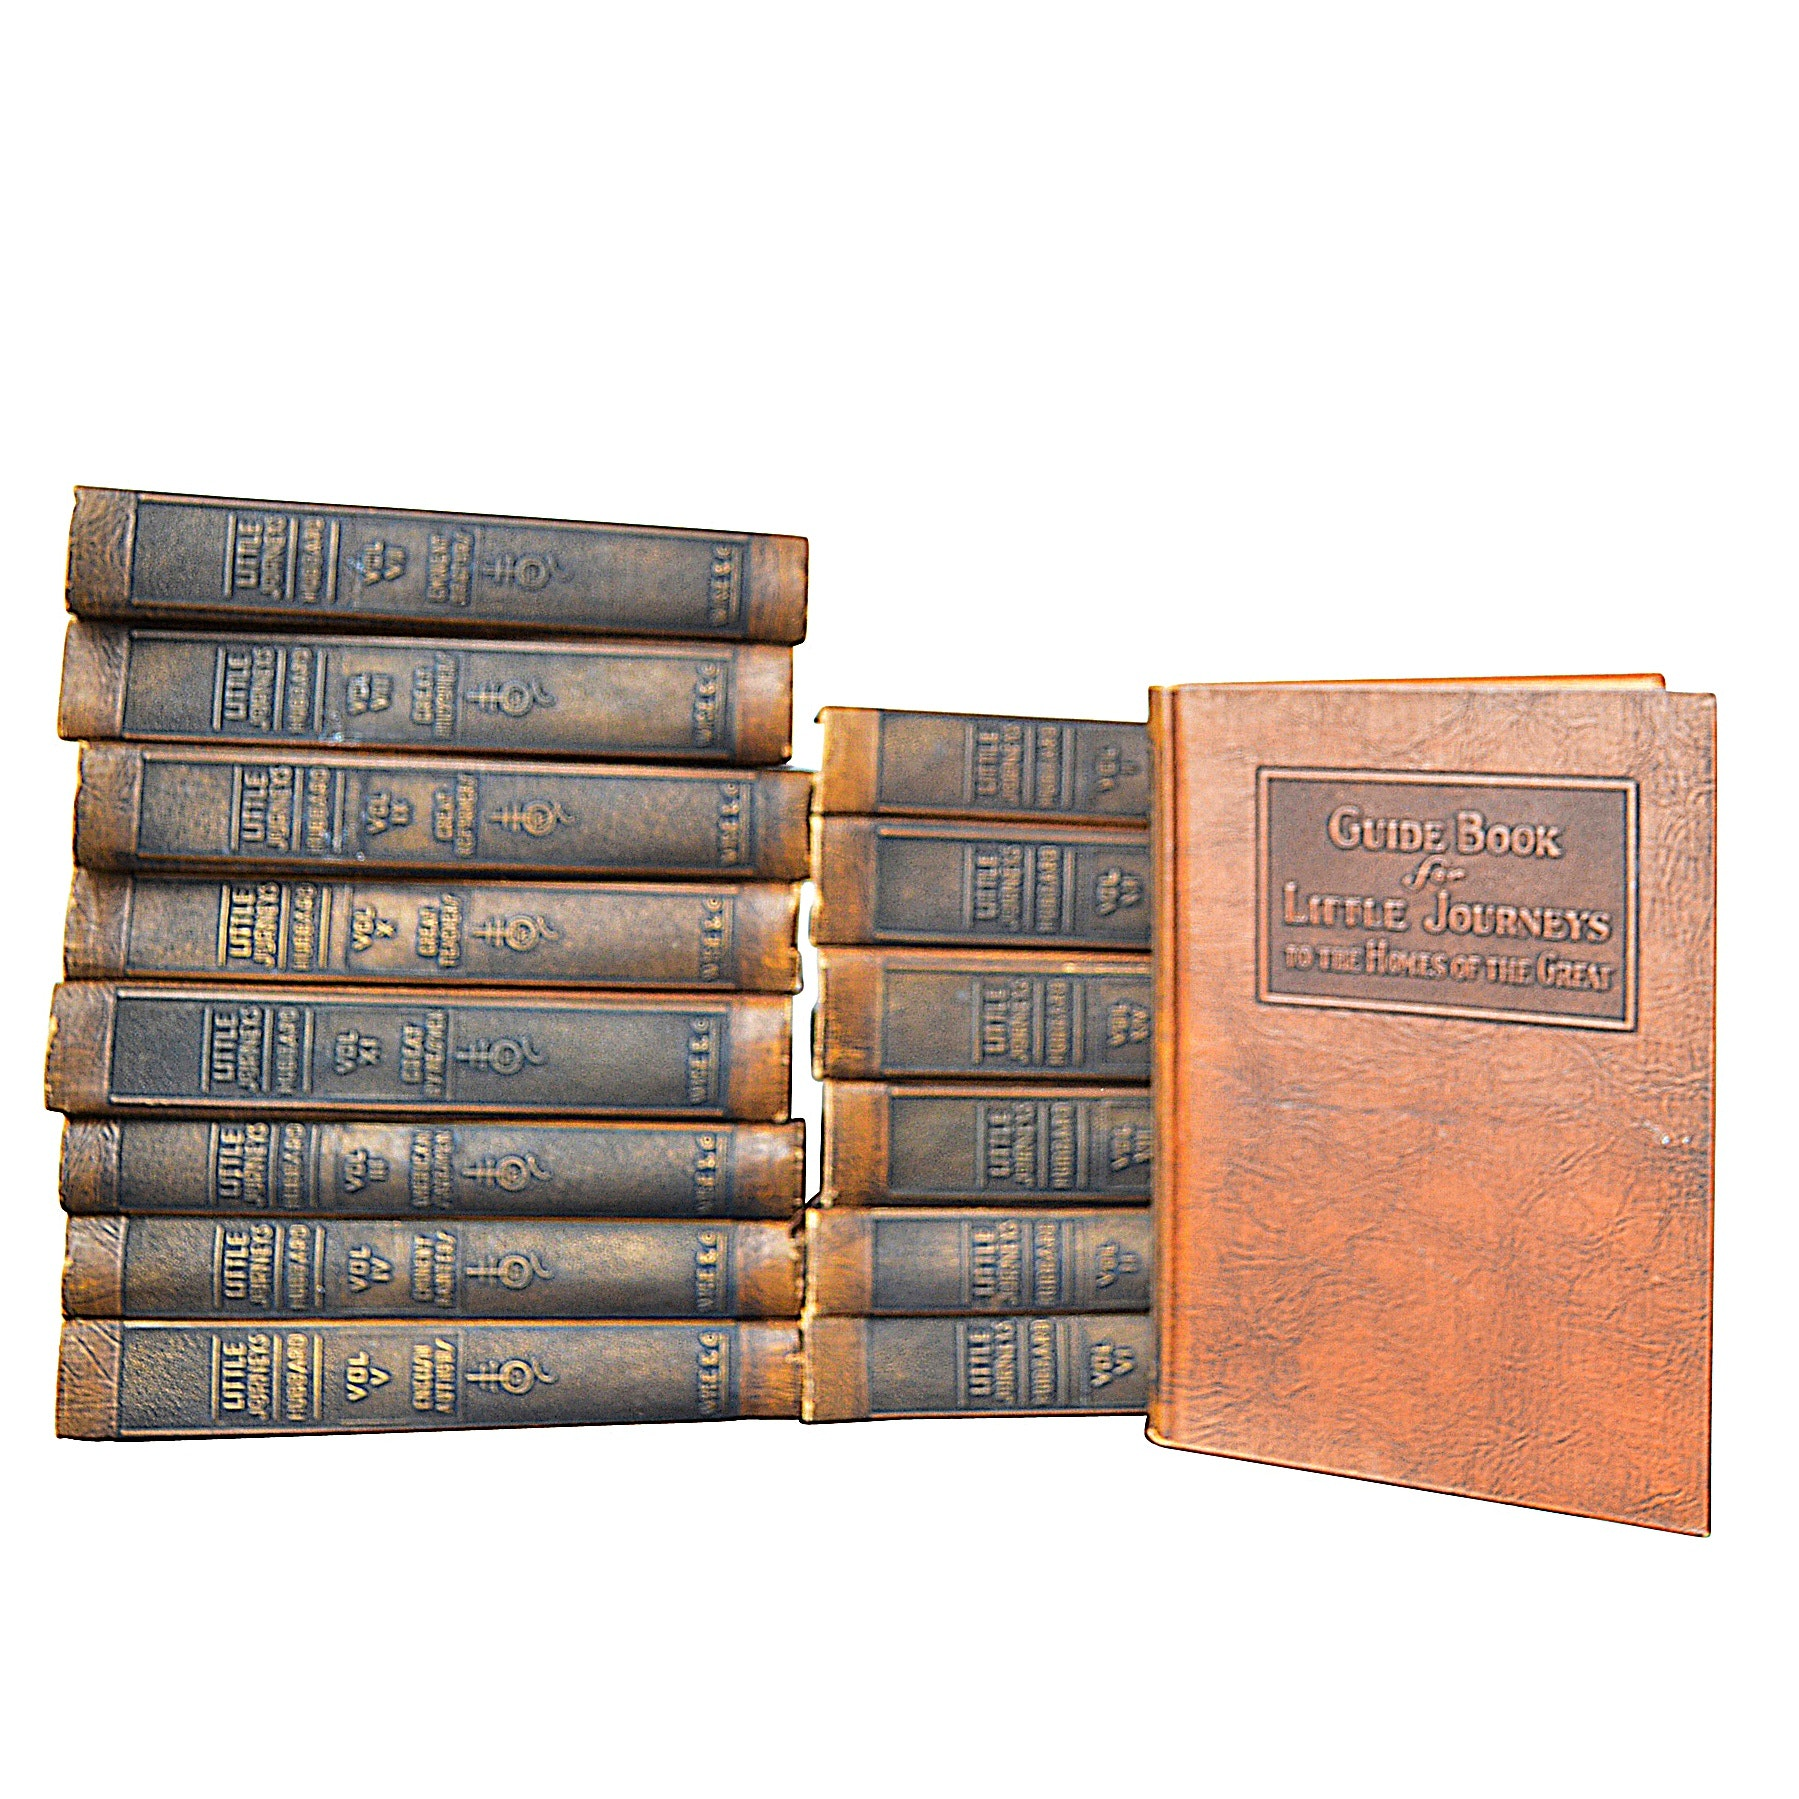 """Little Journeys"" 14 Volume Set by Elbert Hubbard, circa 1928 with Guide Book"